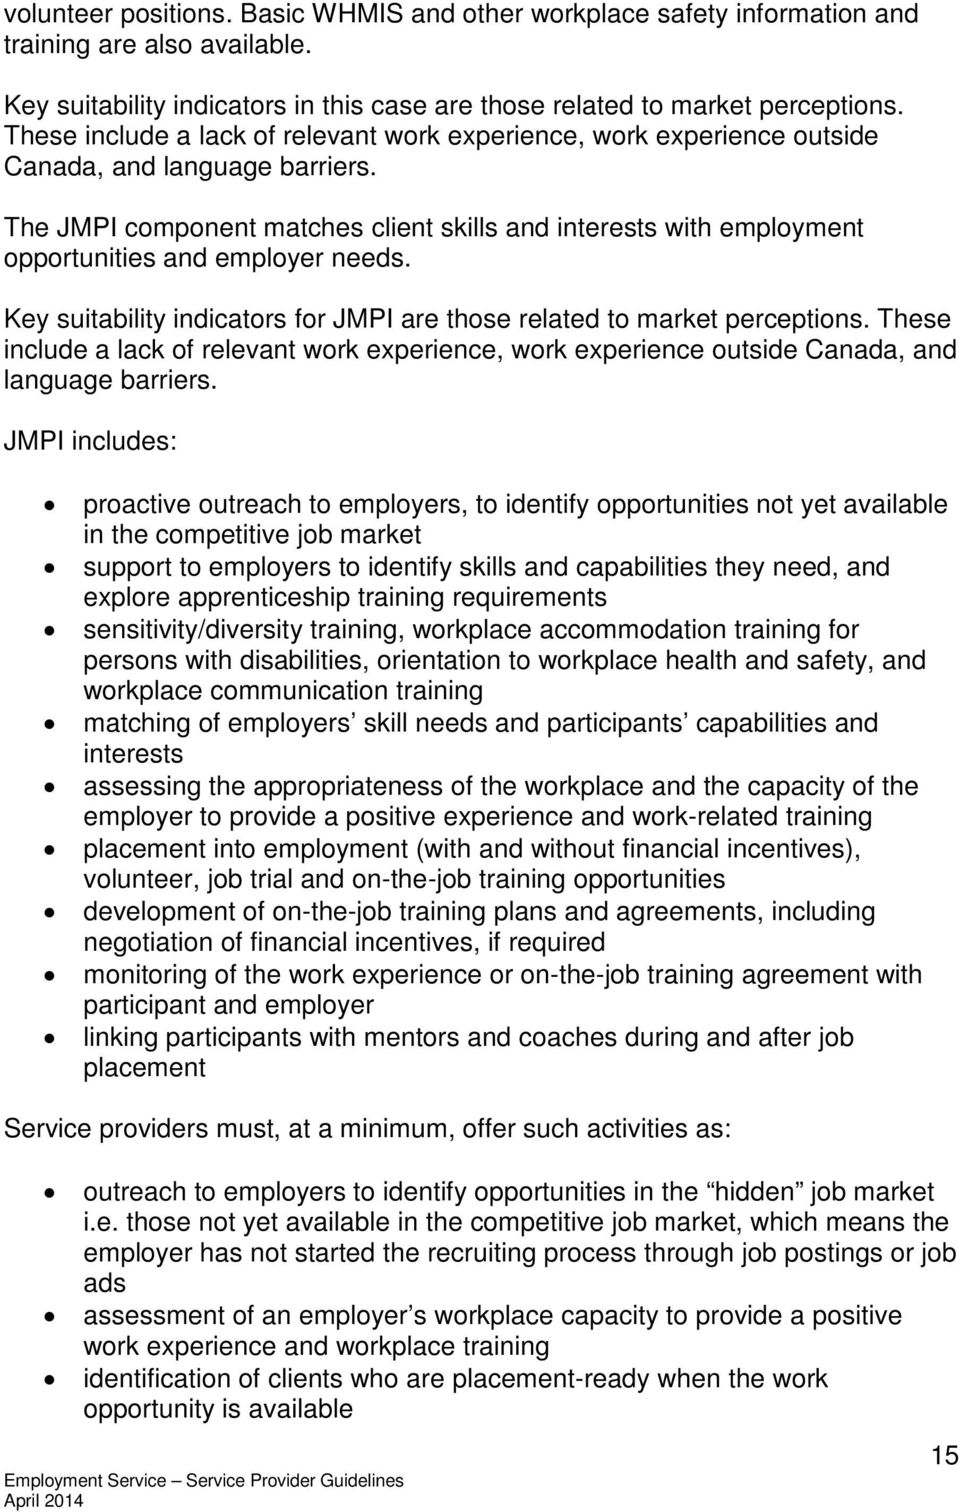 The JMPI component matches client skills and interests with employment opportunities and employer needs. Key suitability indicators for JMPI are those related to market perceptions.